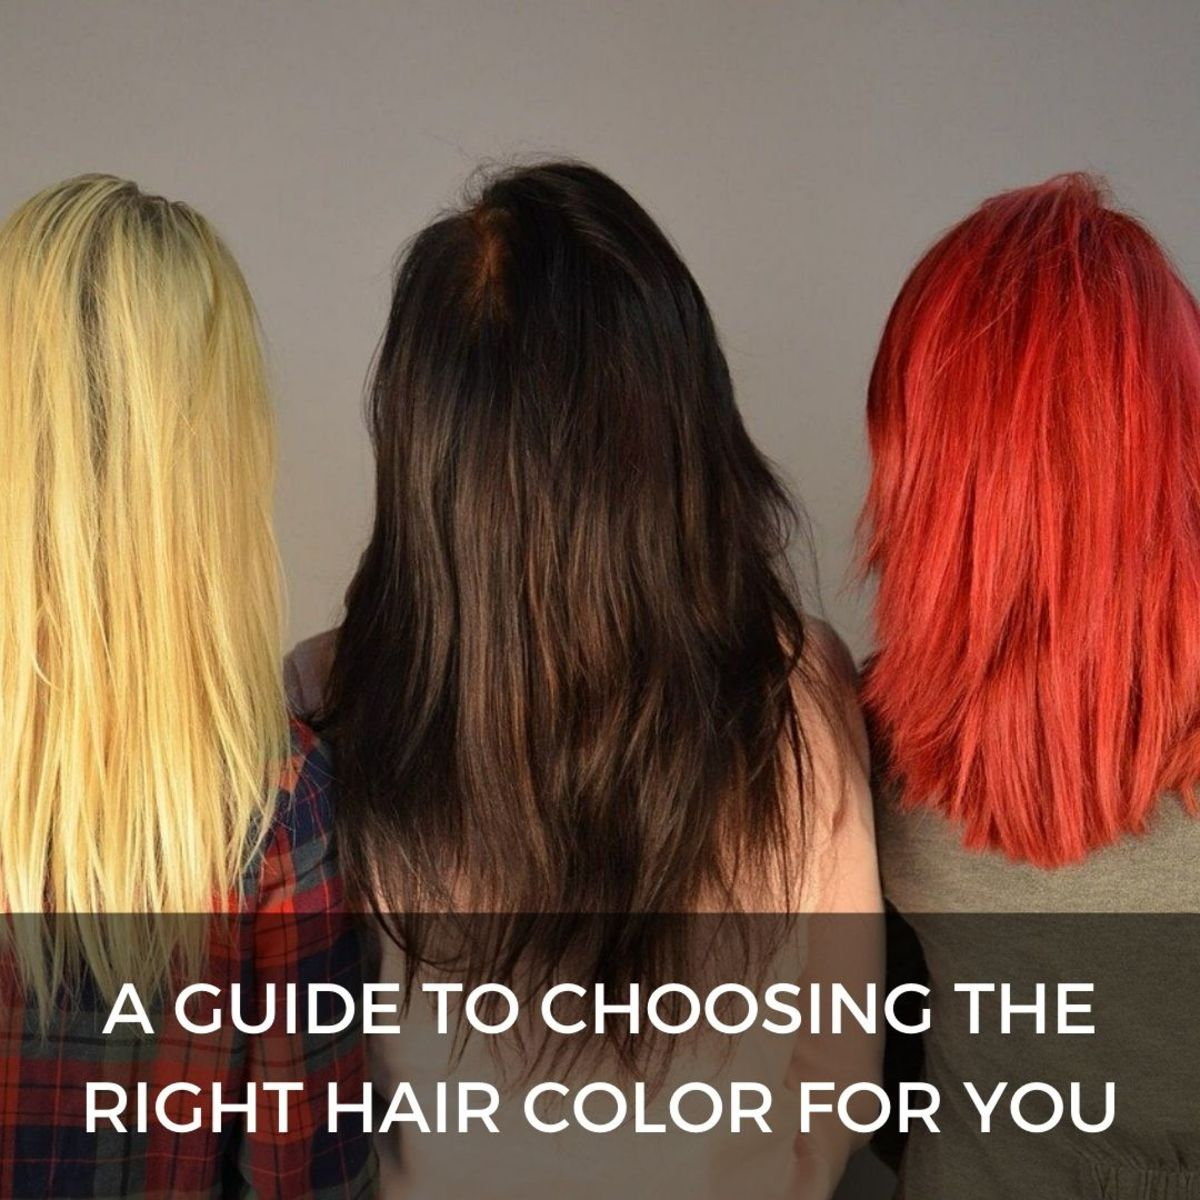 How to Pick the Best Hair Color for Your Face